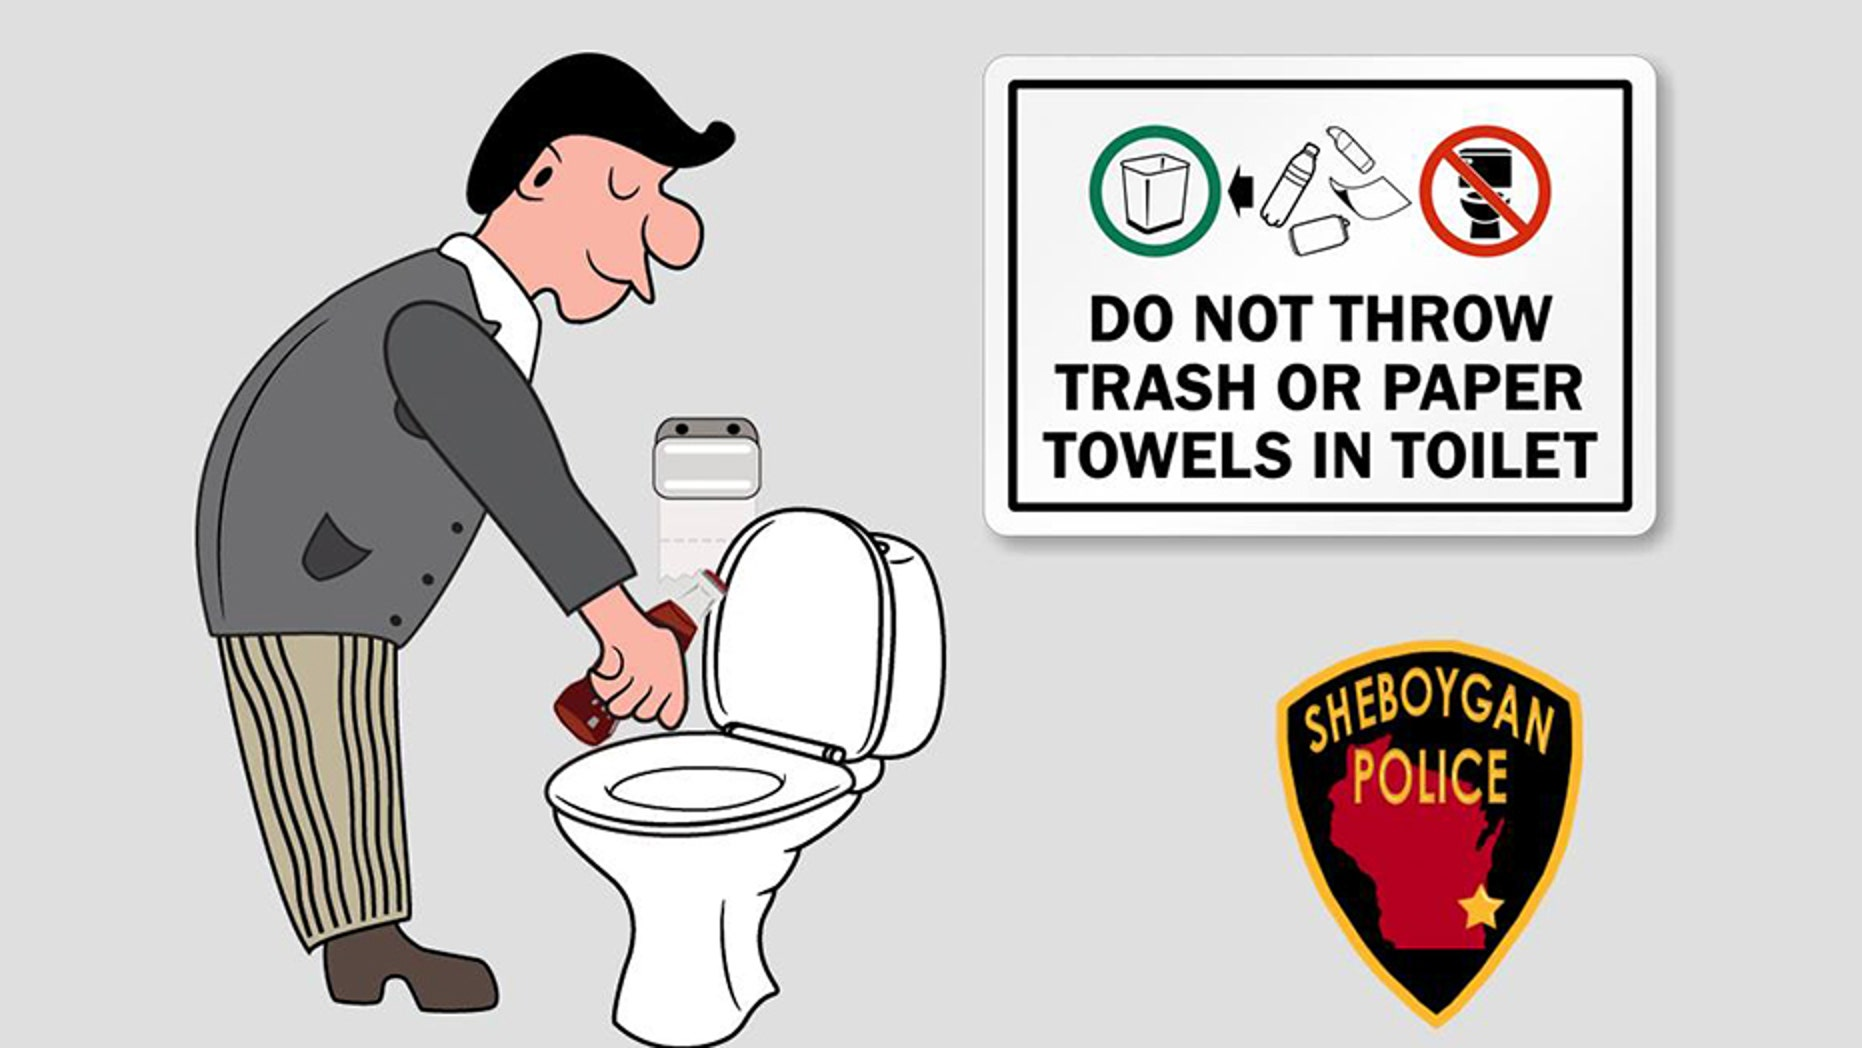 Sheboygan police said a toilet at a community center in Wisconsin has been clogged numerous times over the past year and a half with a 20 ounce soda bottle.